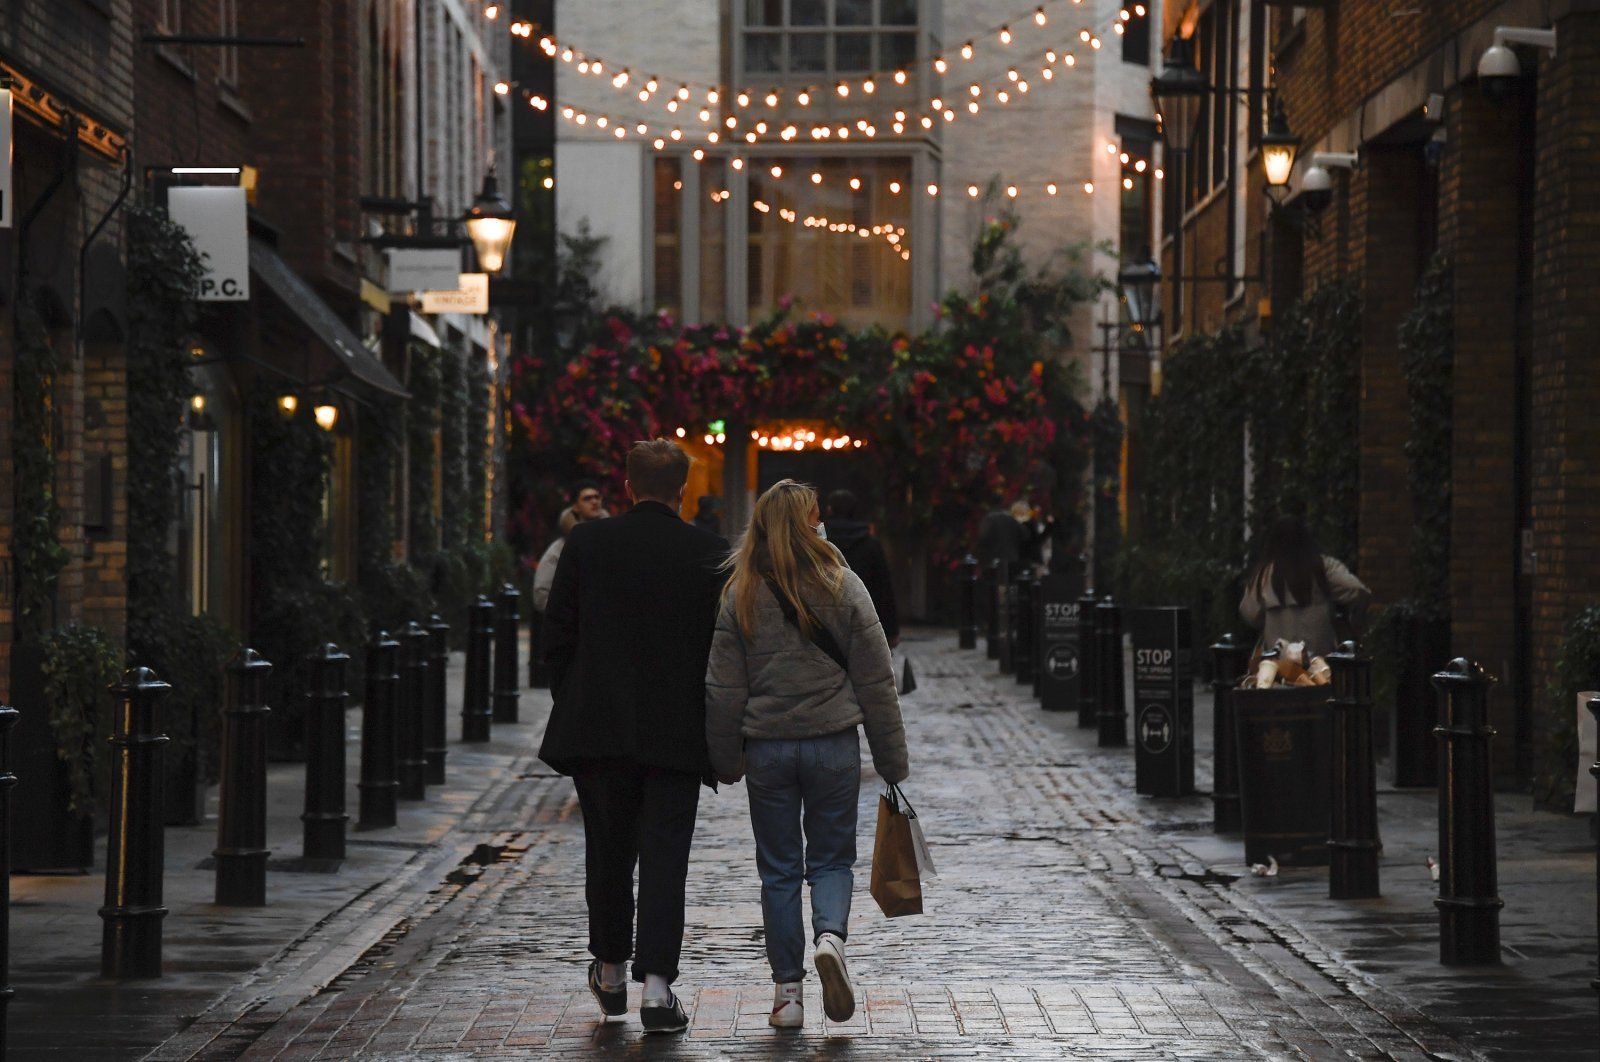 A couple holds hands as they walk in Covent Garden, ahead of the new Tier-4 restriction measures, in London, England, Dec. 19, 2020. (AP Photo)